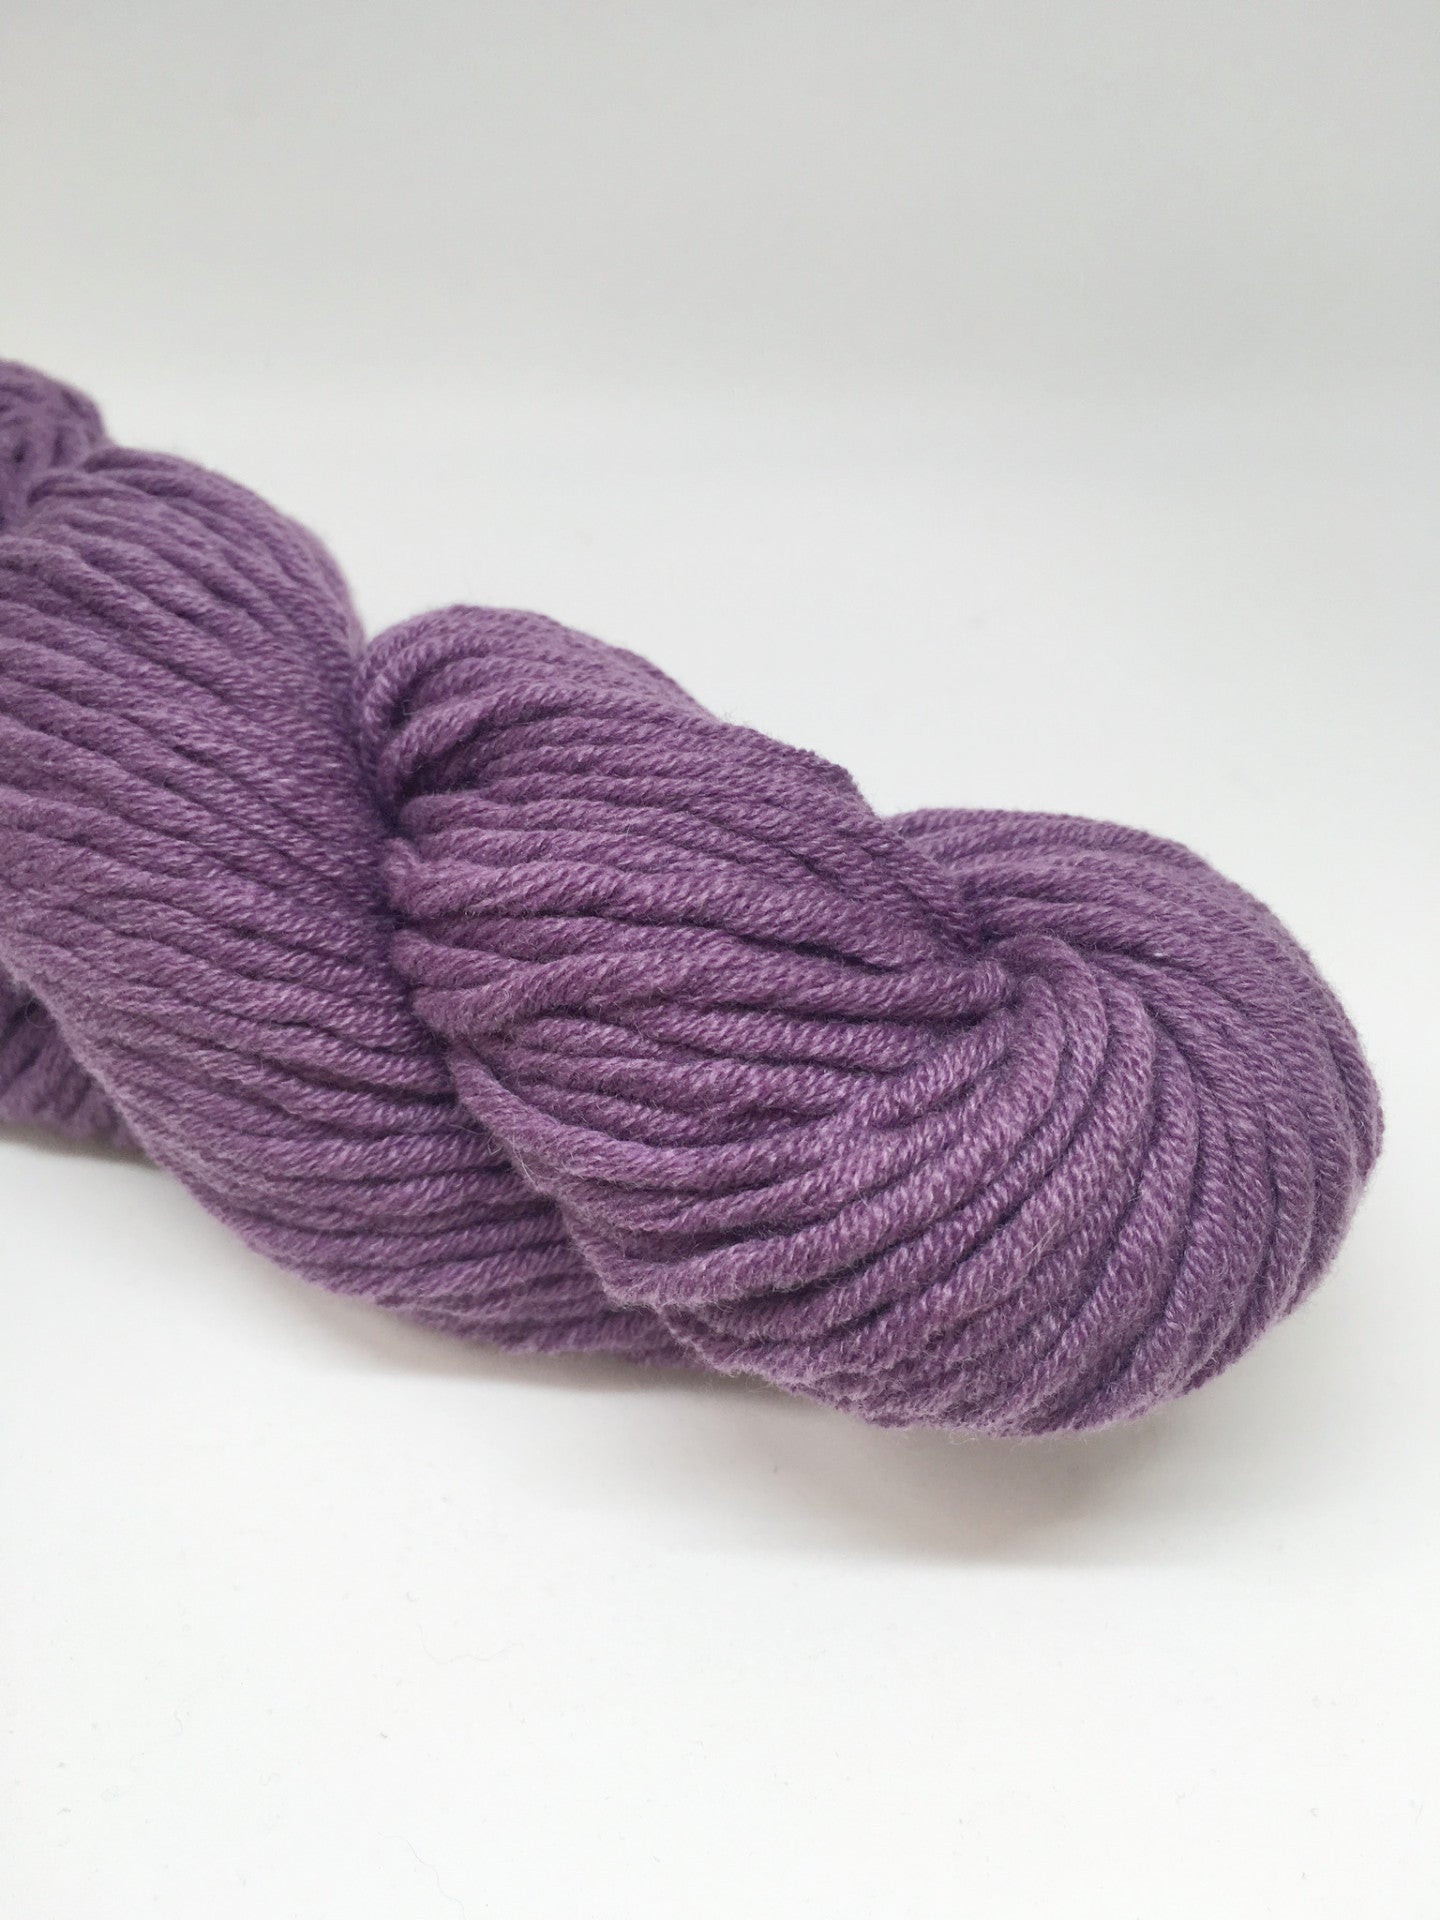 Lux Adorna Knits Bulky discontinued